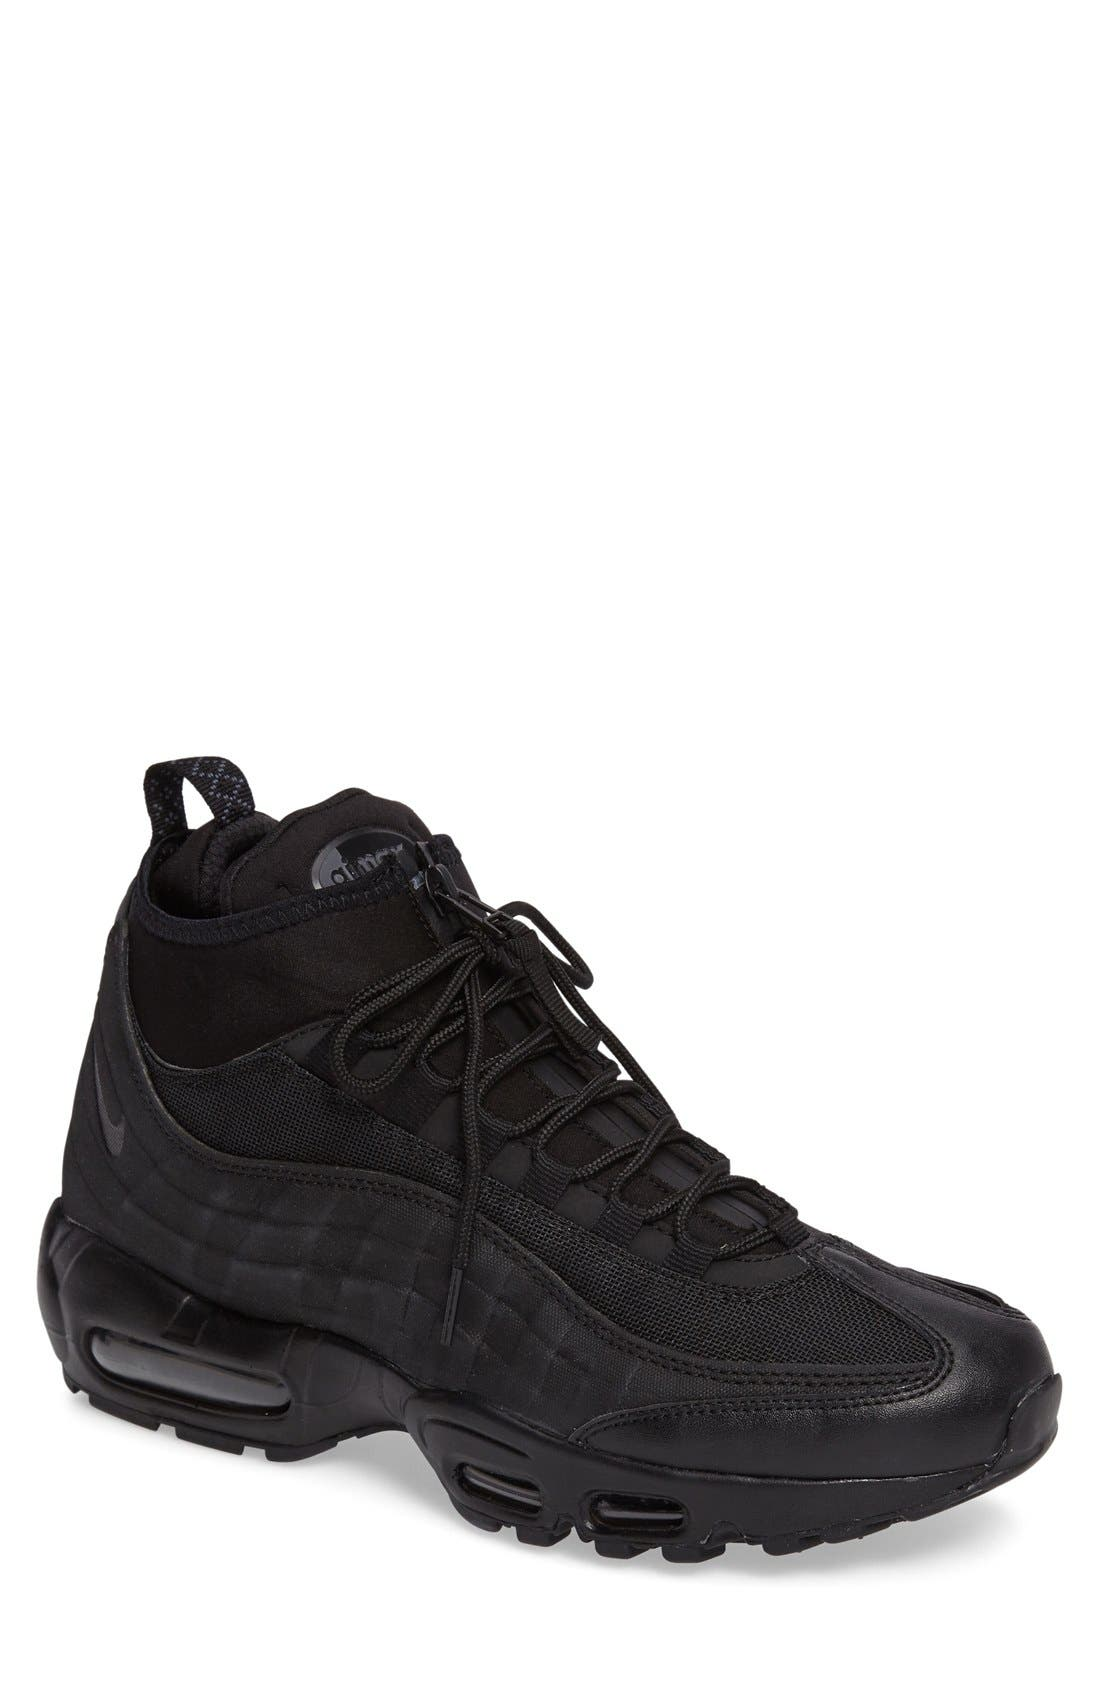 Alternate Image 1 Selected - Nike Air Max 95 Water-Resistant Sneaker Boot (Men)